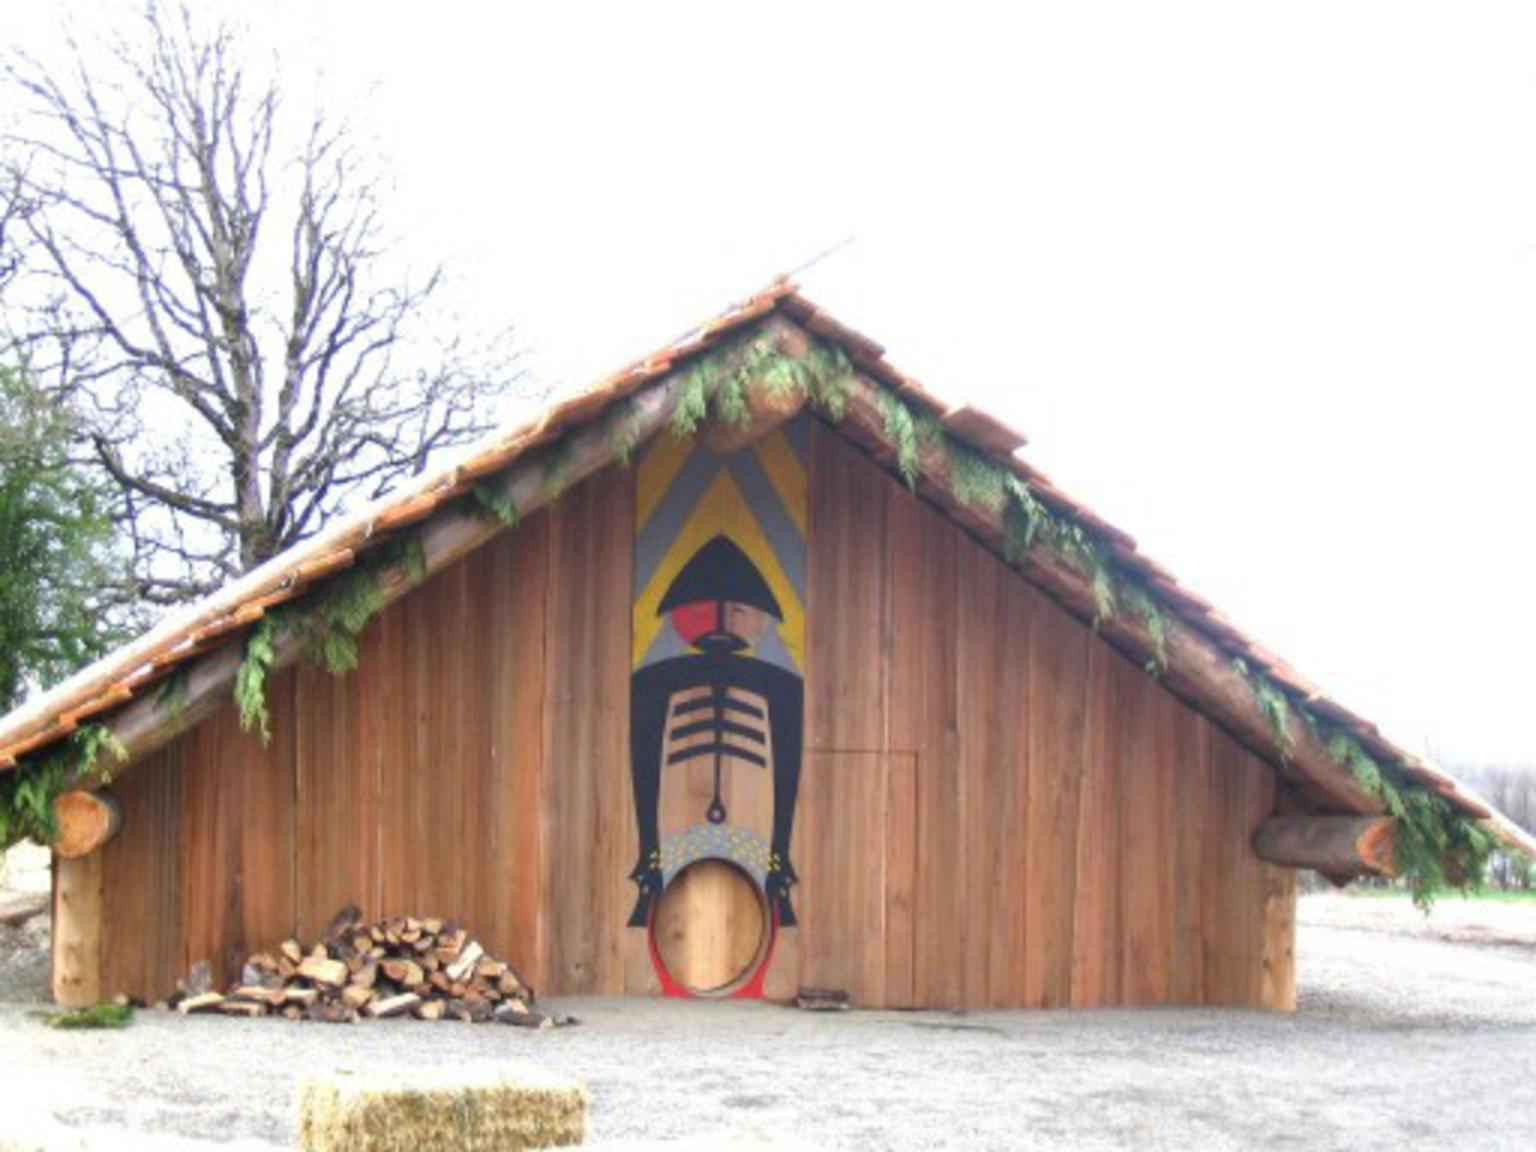 front-view-of-cathlapotle-plankhouse Native American Plank House People on native american sites in nh, native american wooden houses, native american wigwams, native american wattle and daub, native american wickiup, native american round houses, native american bolo ties for men, native american teepee, native american lodge, native american houses school project, native american homes, native american yurt, native american adobe houses, native americans igloos, native american paper artwork, native american grass houses, native american indian tribe diorama, native american yurok history, native american hogan, native american indian shelters,